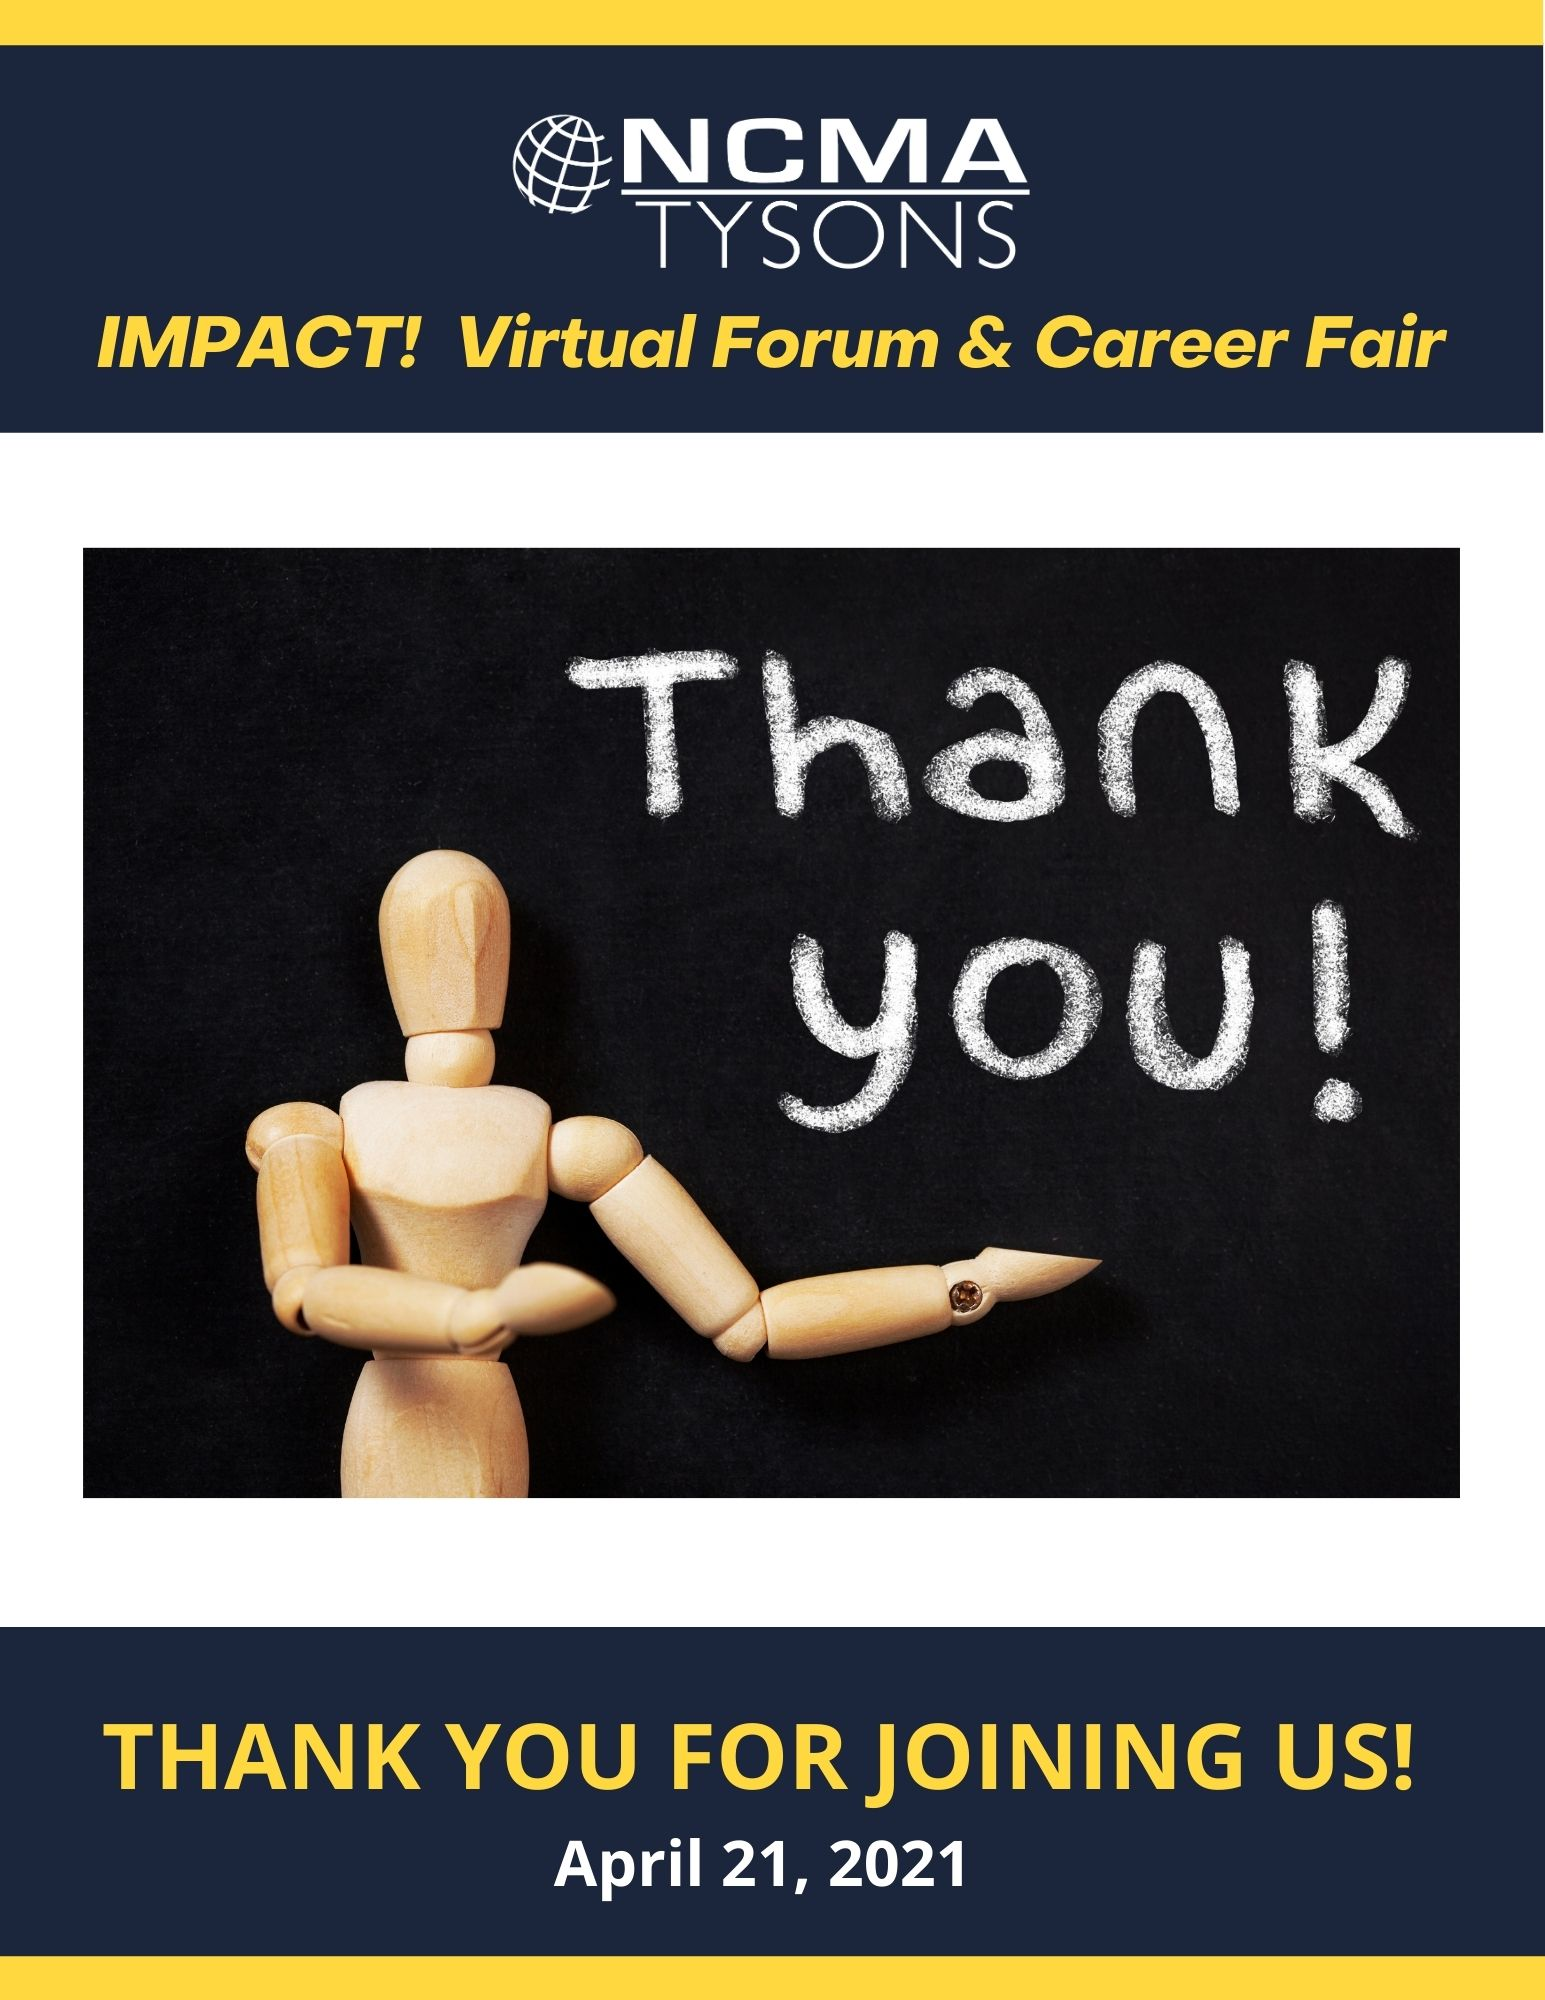 Thank you for attending the Impact Forum and Career Fair!